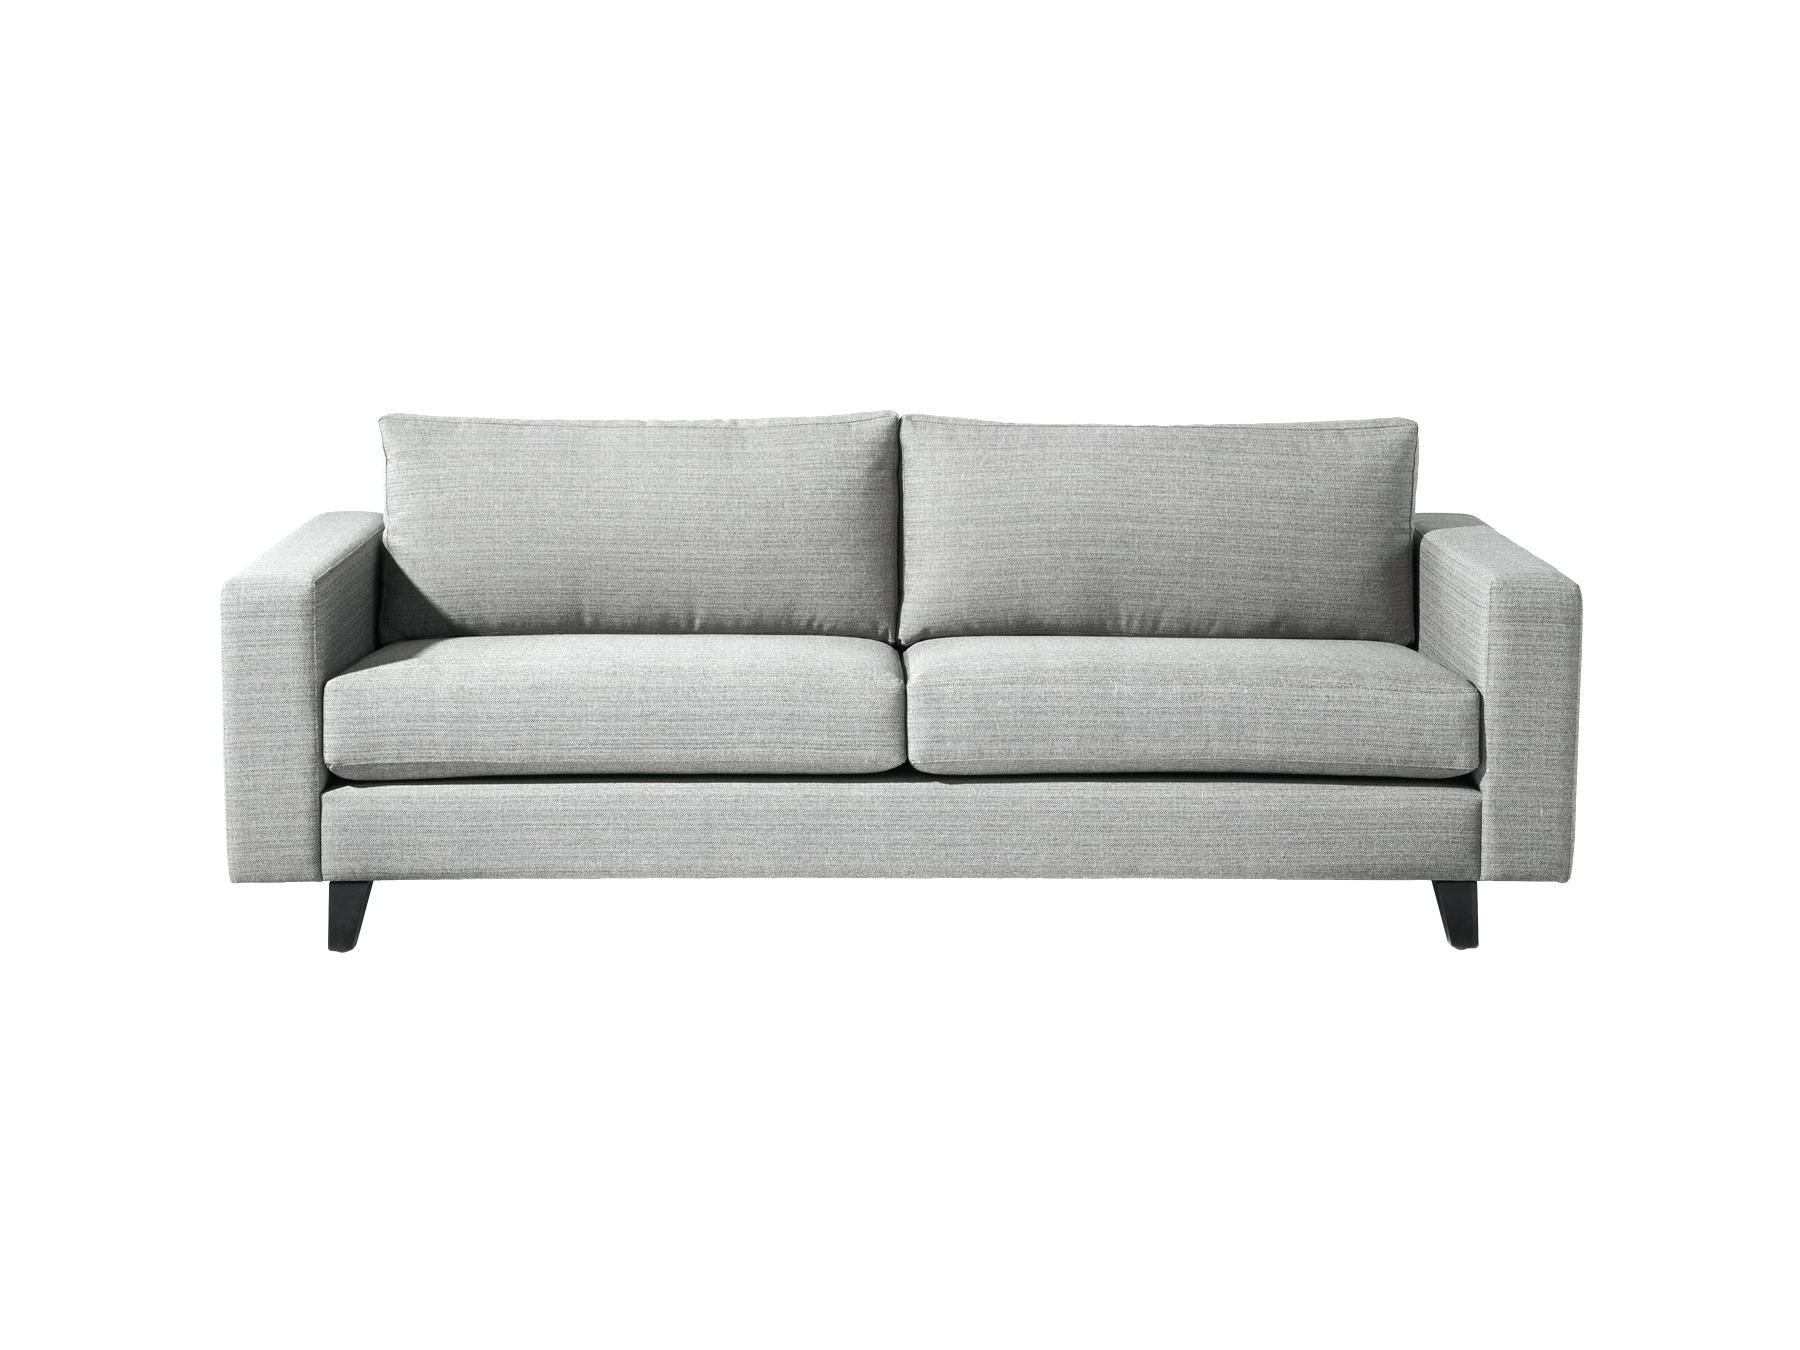 Jordans Sectional Sofas Regarding Well Liked Jordans Furniture Couches Sectional Sofawolf And – 4Parkar (View 5 of 15)